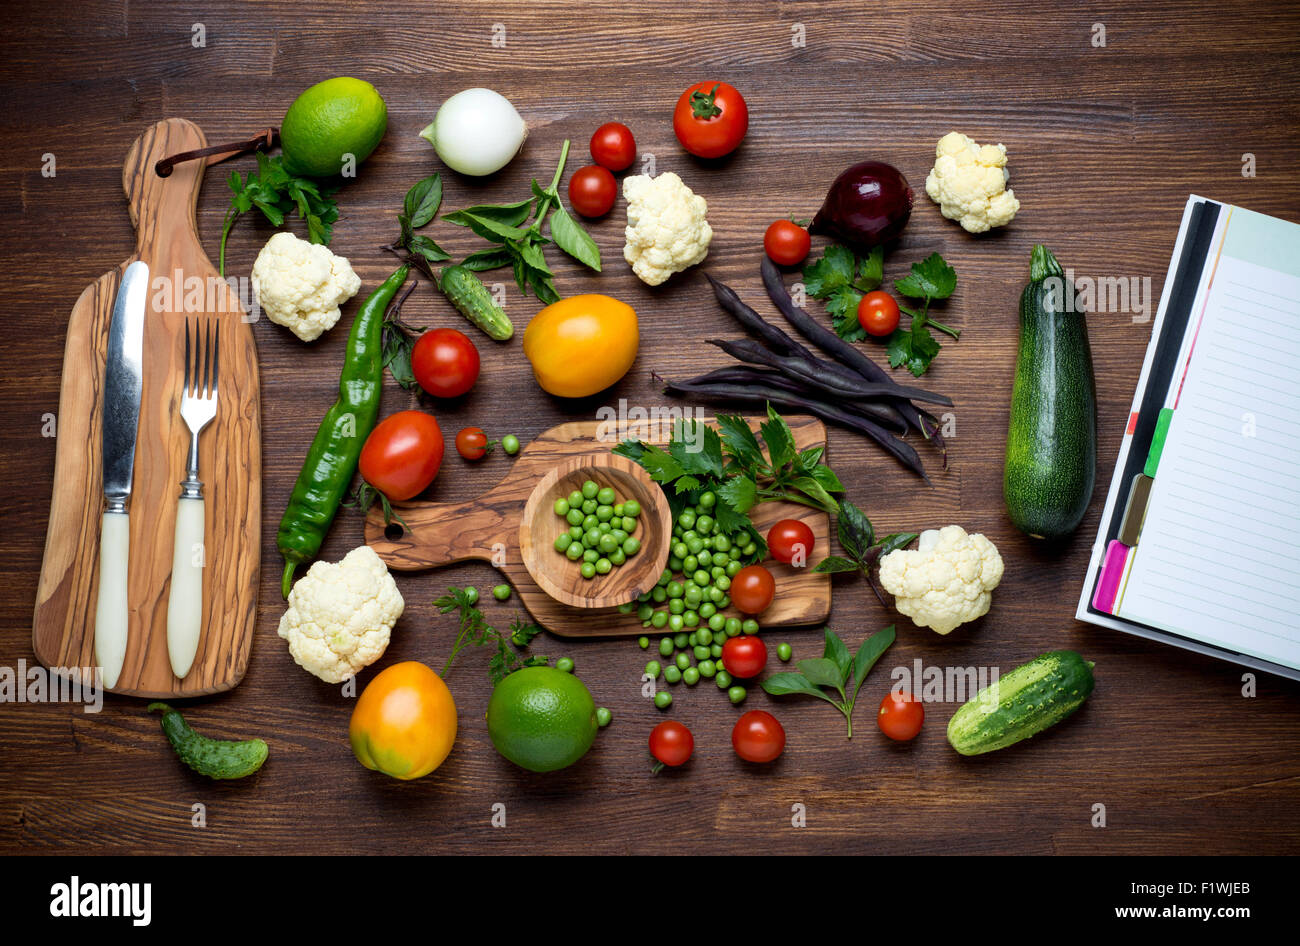 Healthy food herbs and vegetables on wooden table with recipe book healthy food herbs and vegetables on wooden table with recipe book top view forumfinder Images